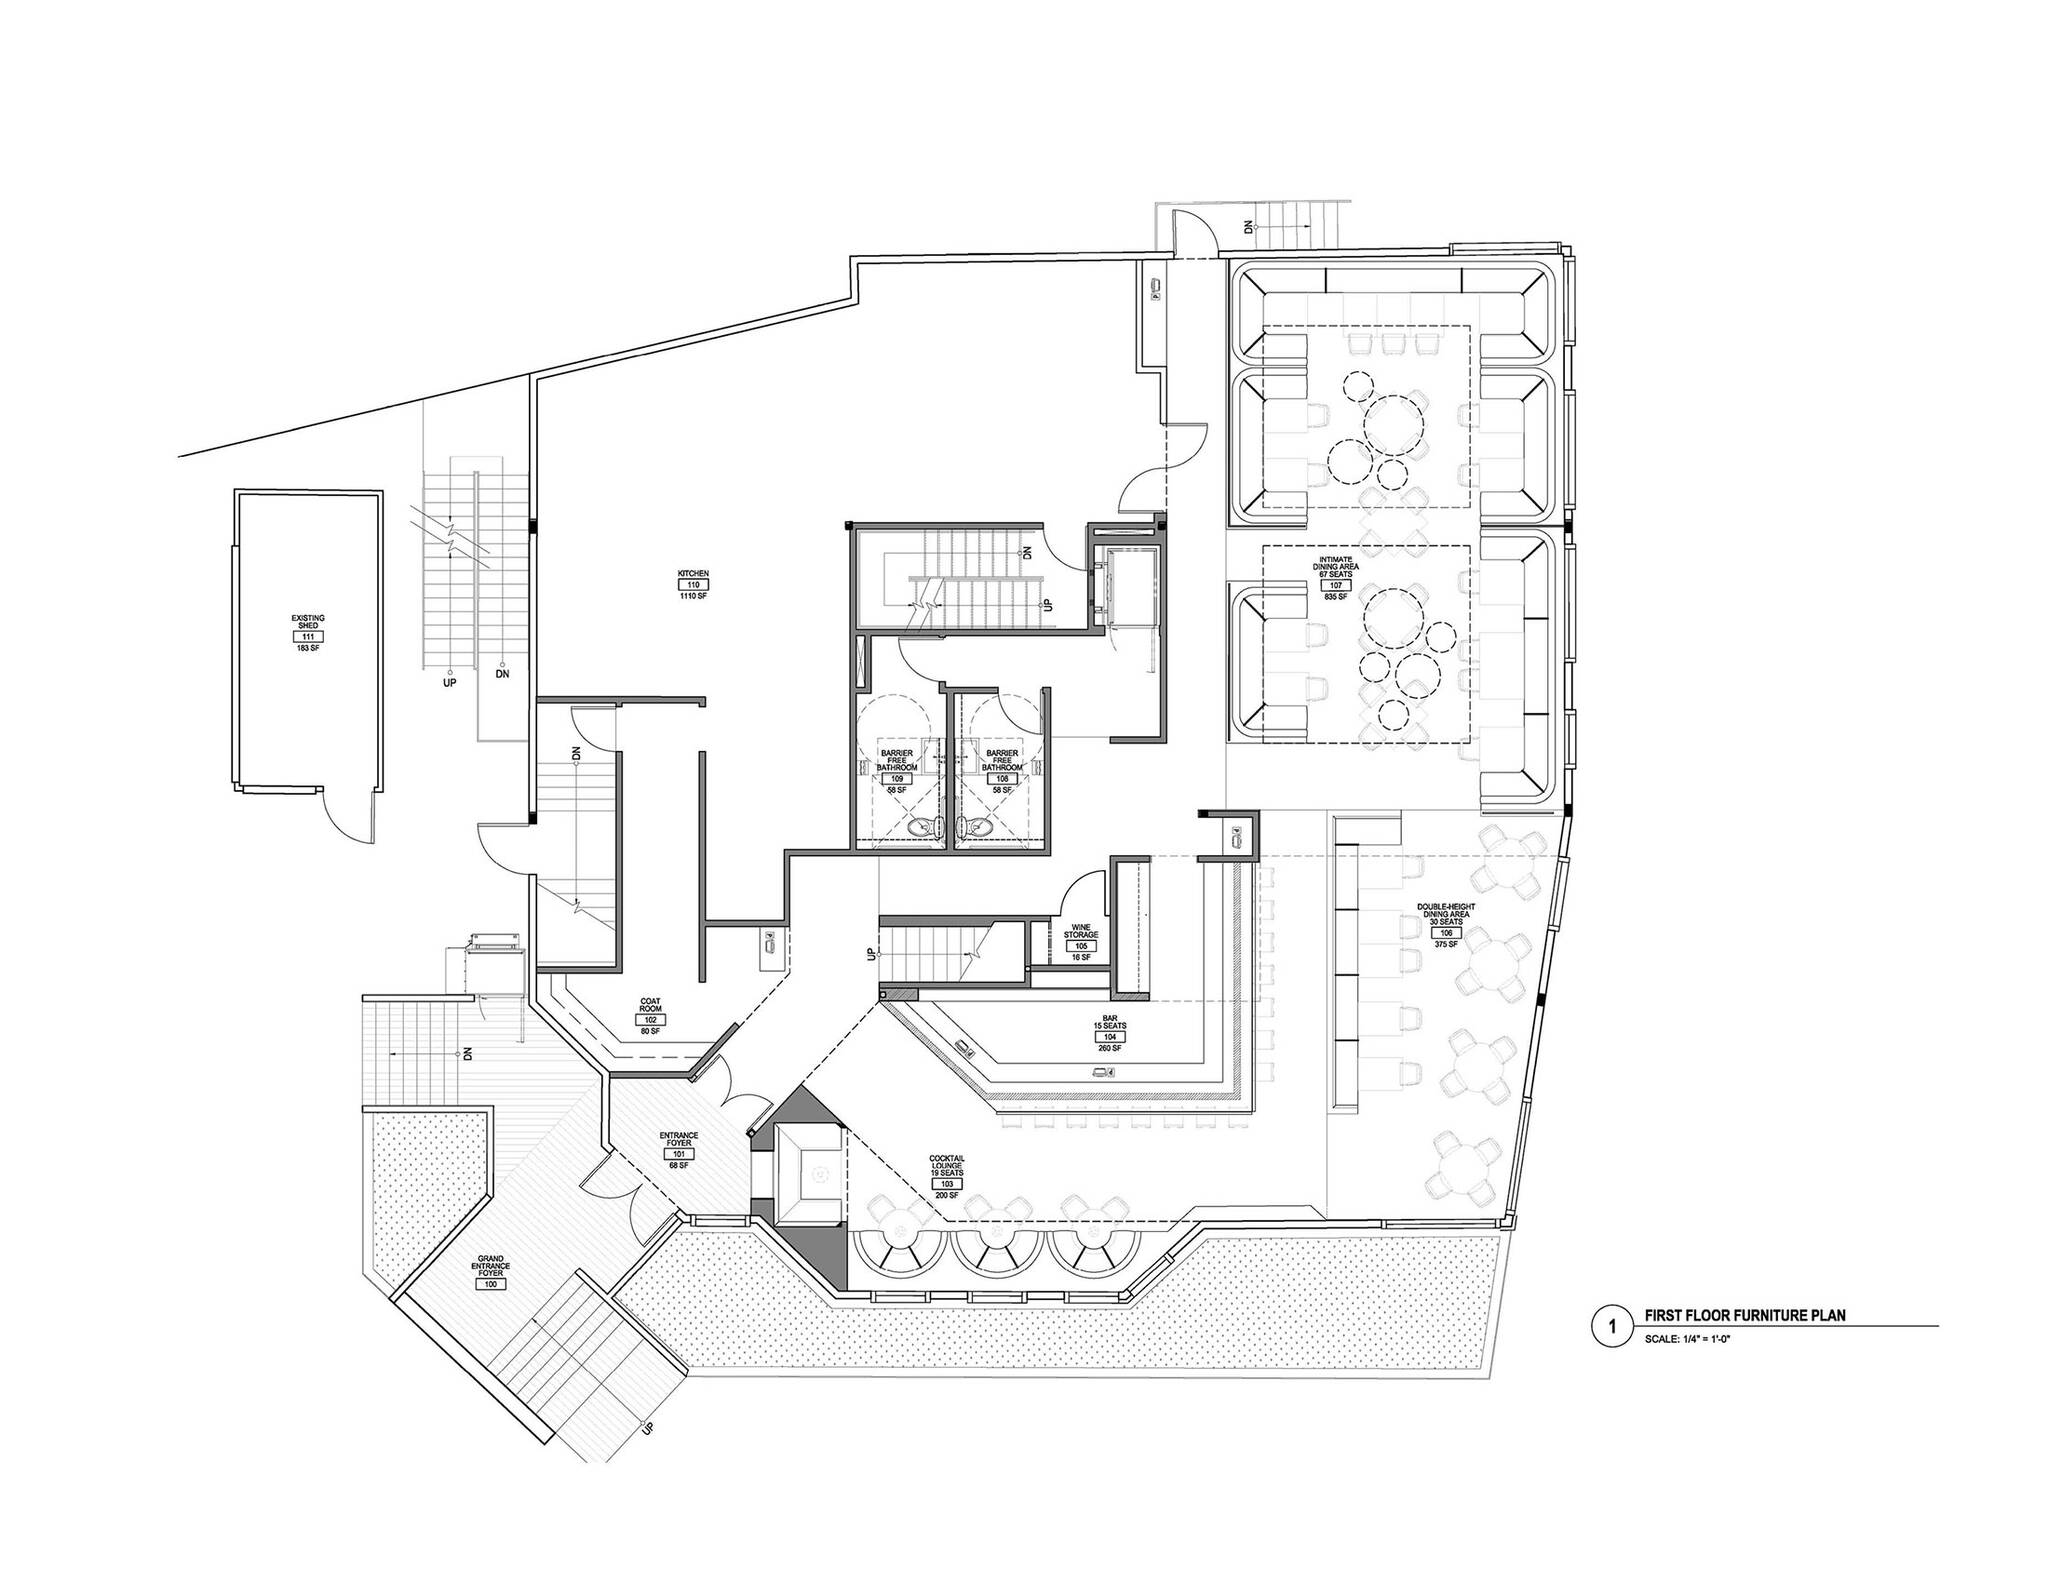 Ground floor plan of the American Cut Bar & Grill project located at 495 Sylvan Avenue in Englewood Cliffs, New Jersey designed by the architecture studio Danny Forster & Architecture